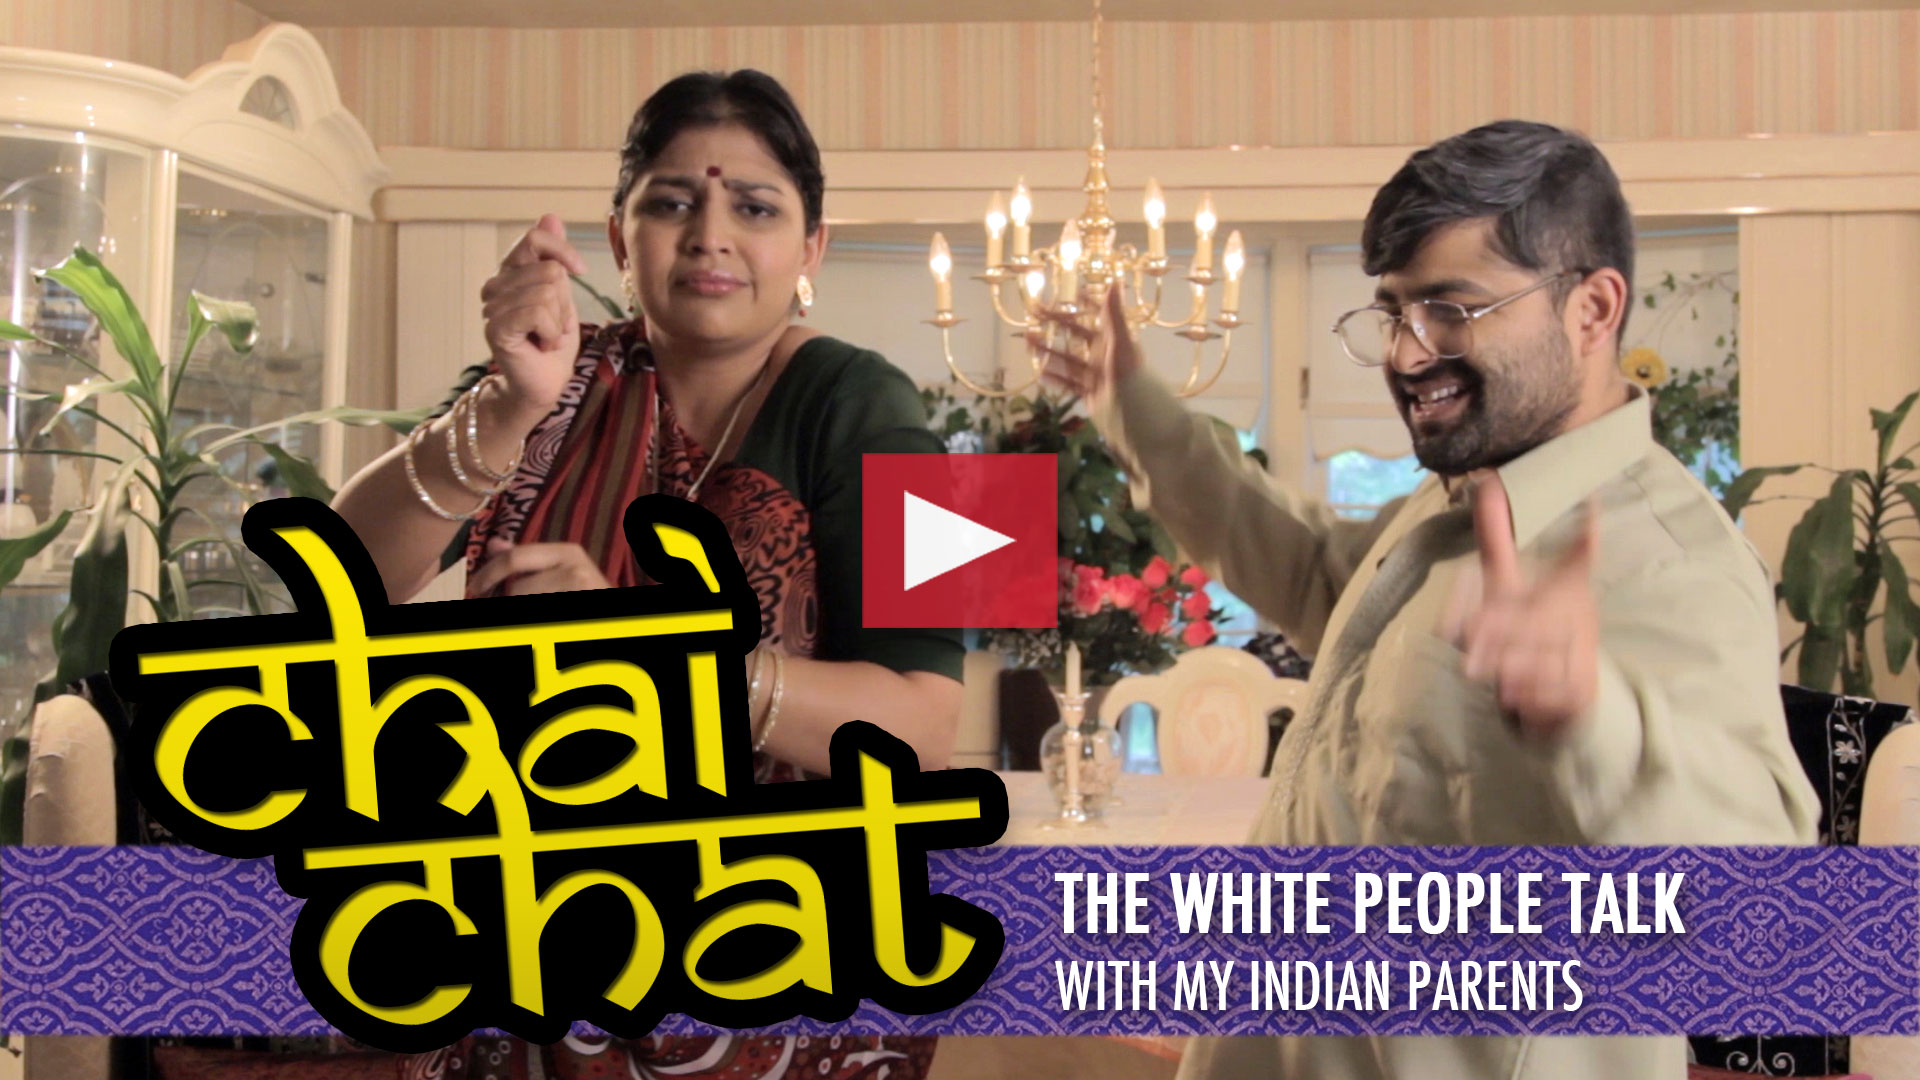 Chai Chat: The White People Talk with My Indian Parents